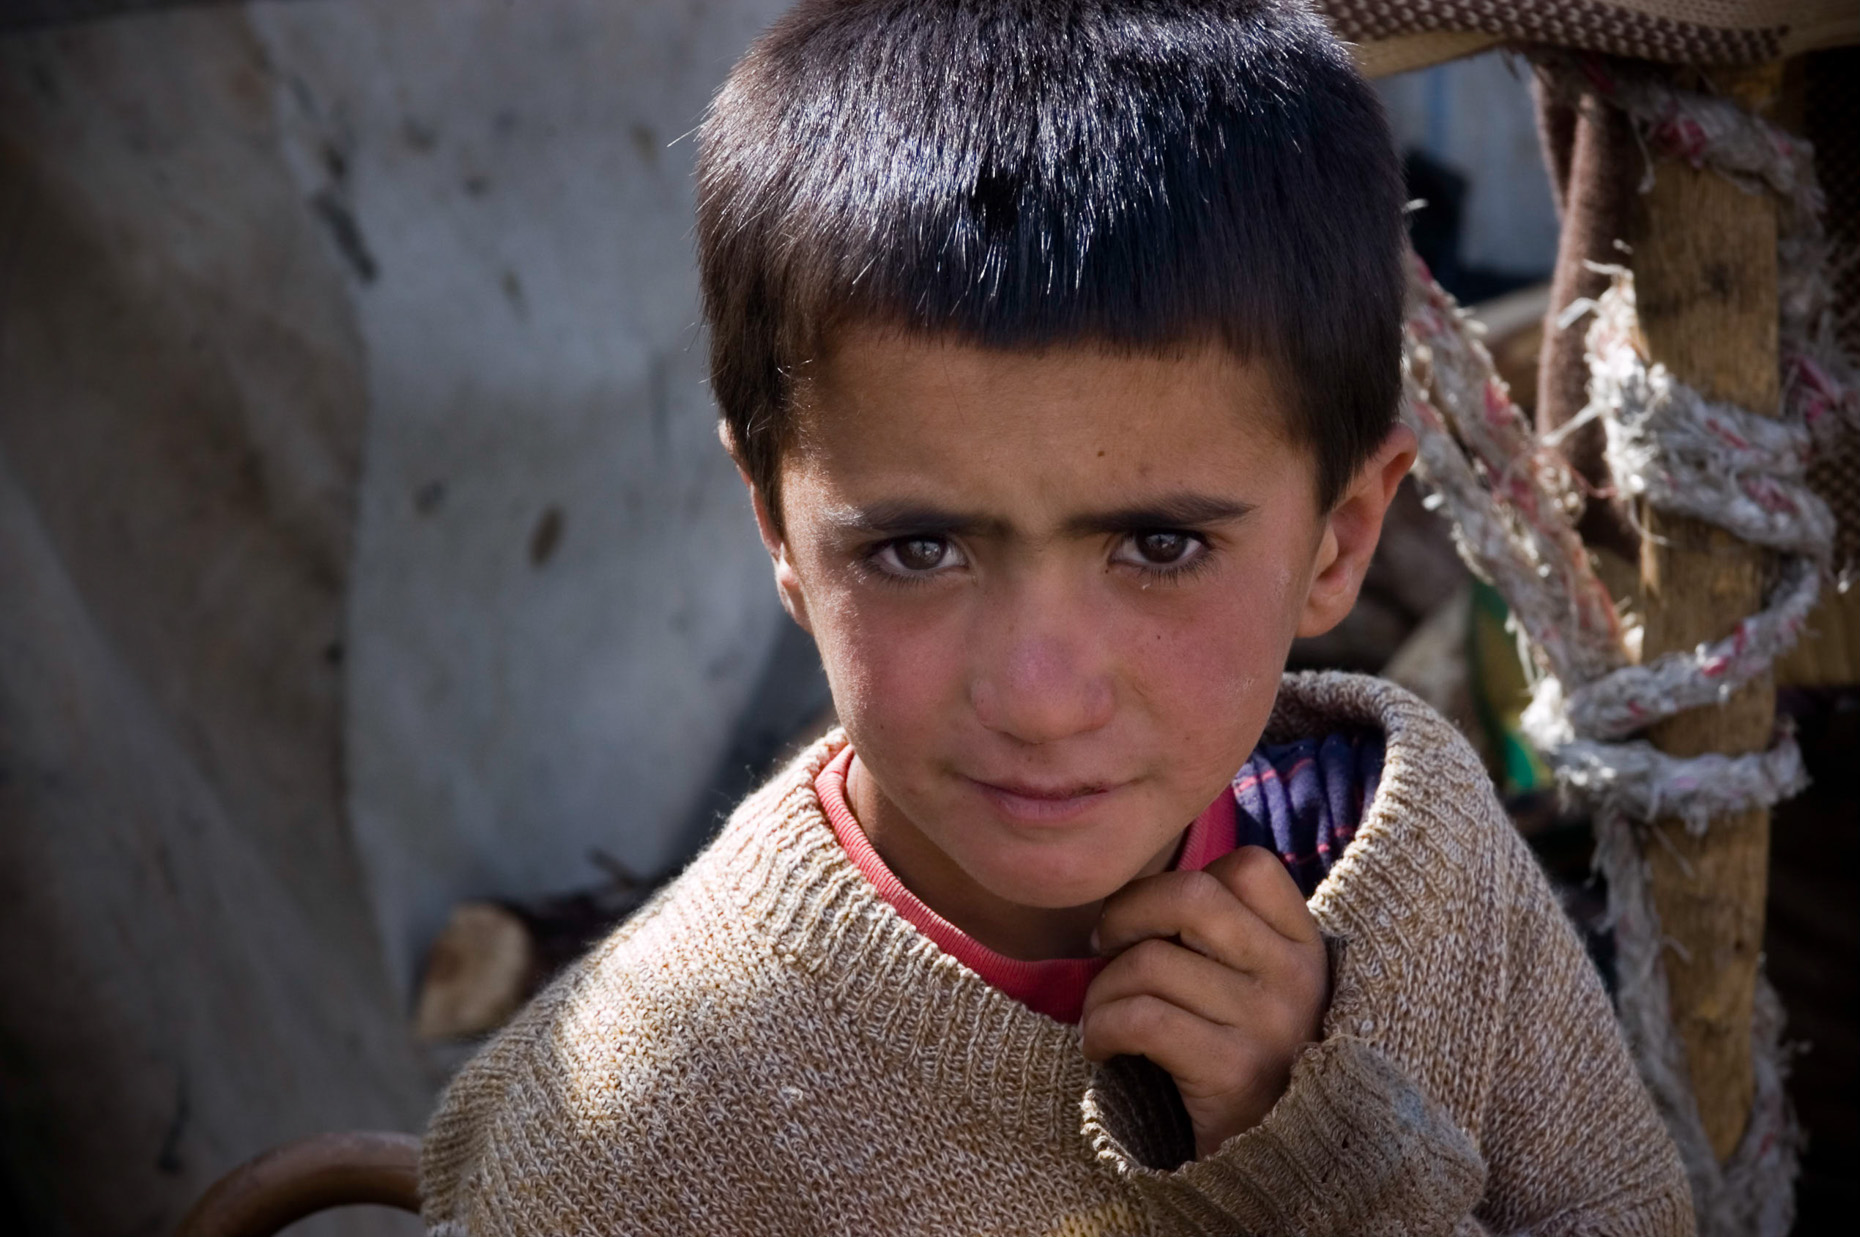 Close up portrait of nomadic Kurdish boy in remote mountain village near Syrian border, Turkey.